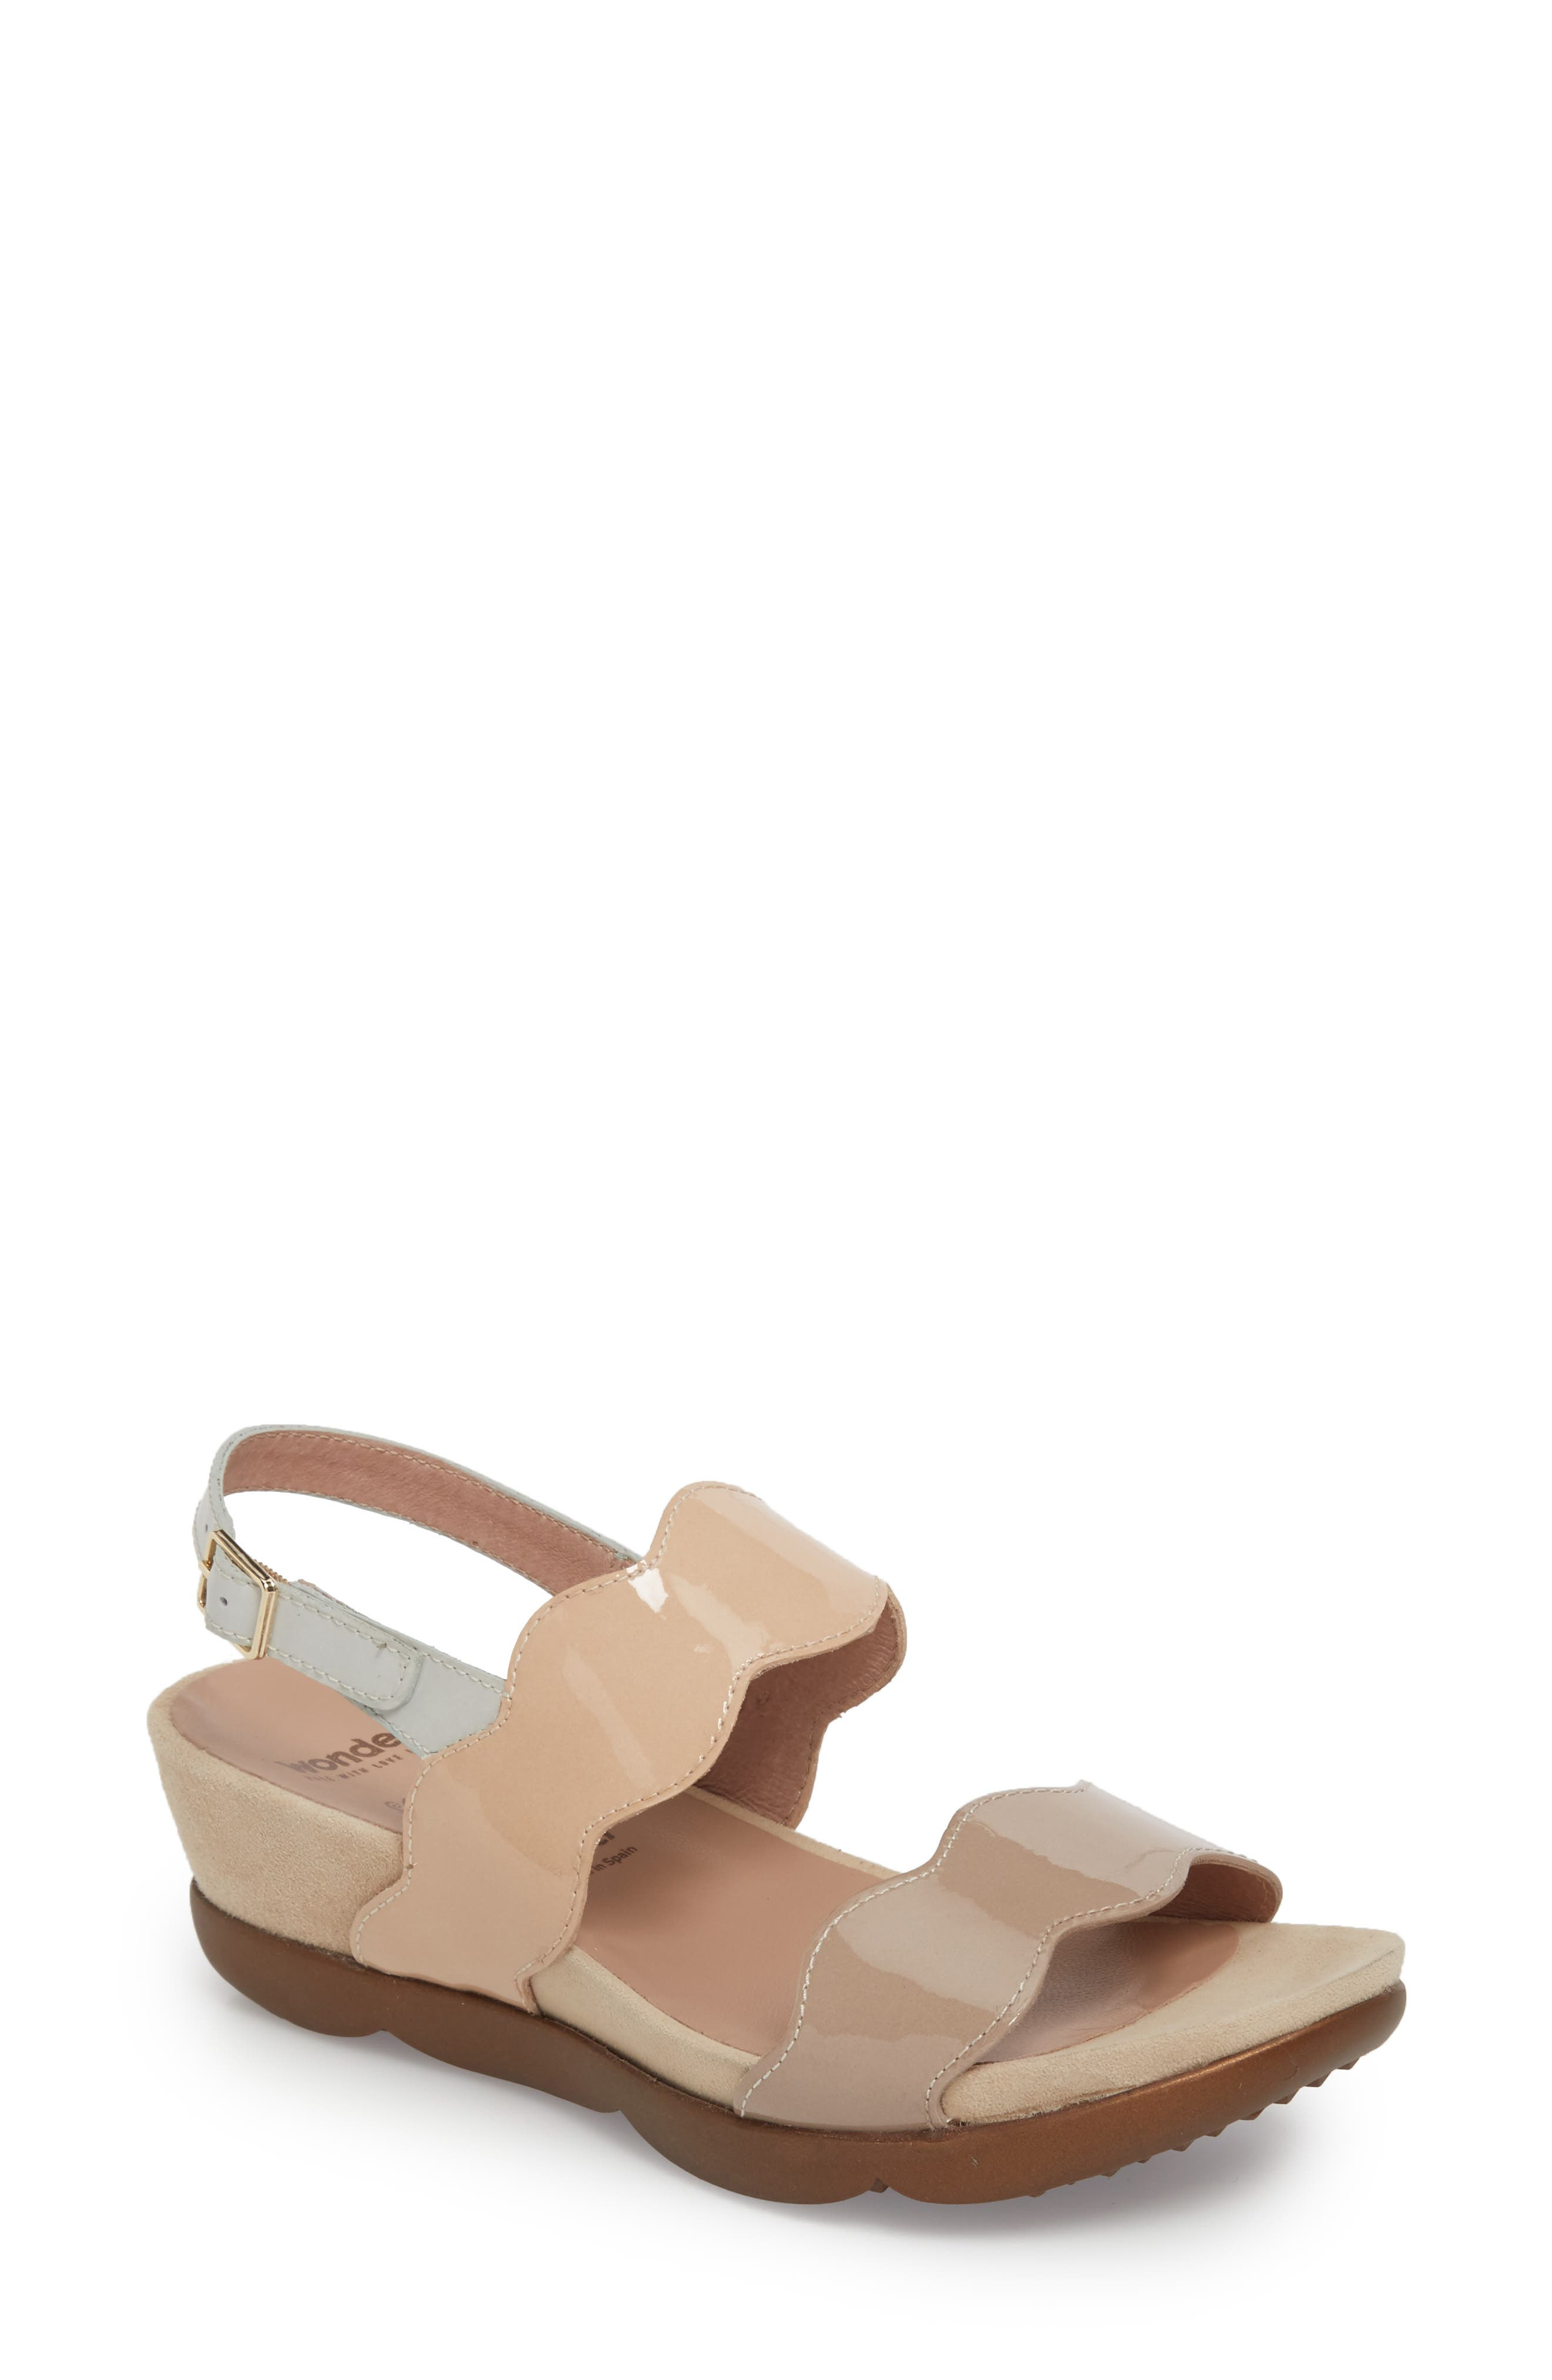 Wonders Wedge Sandal - Beige